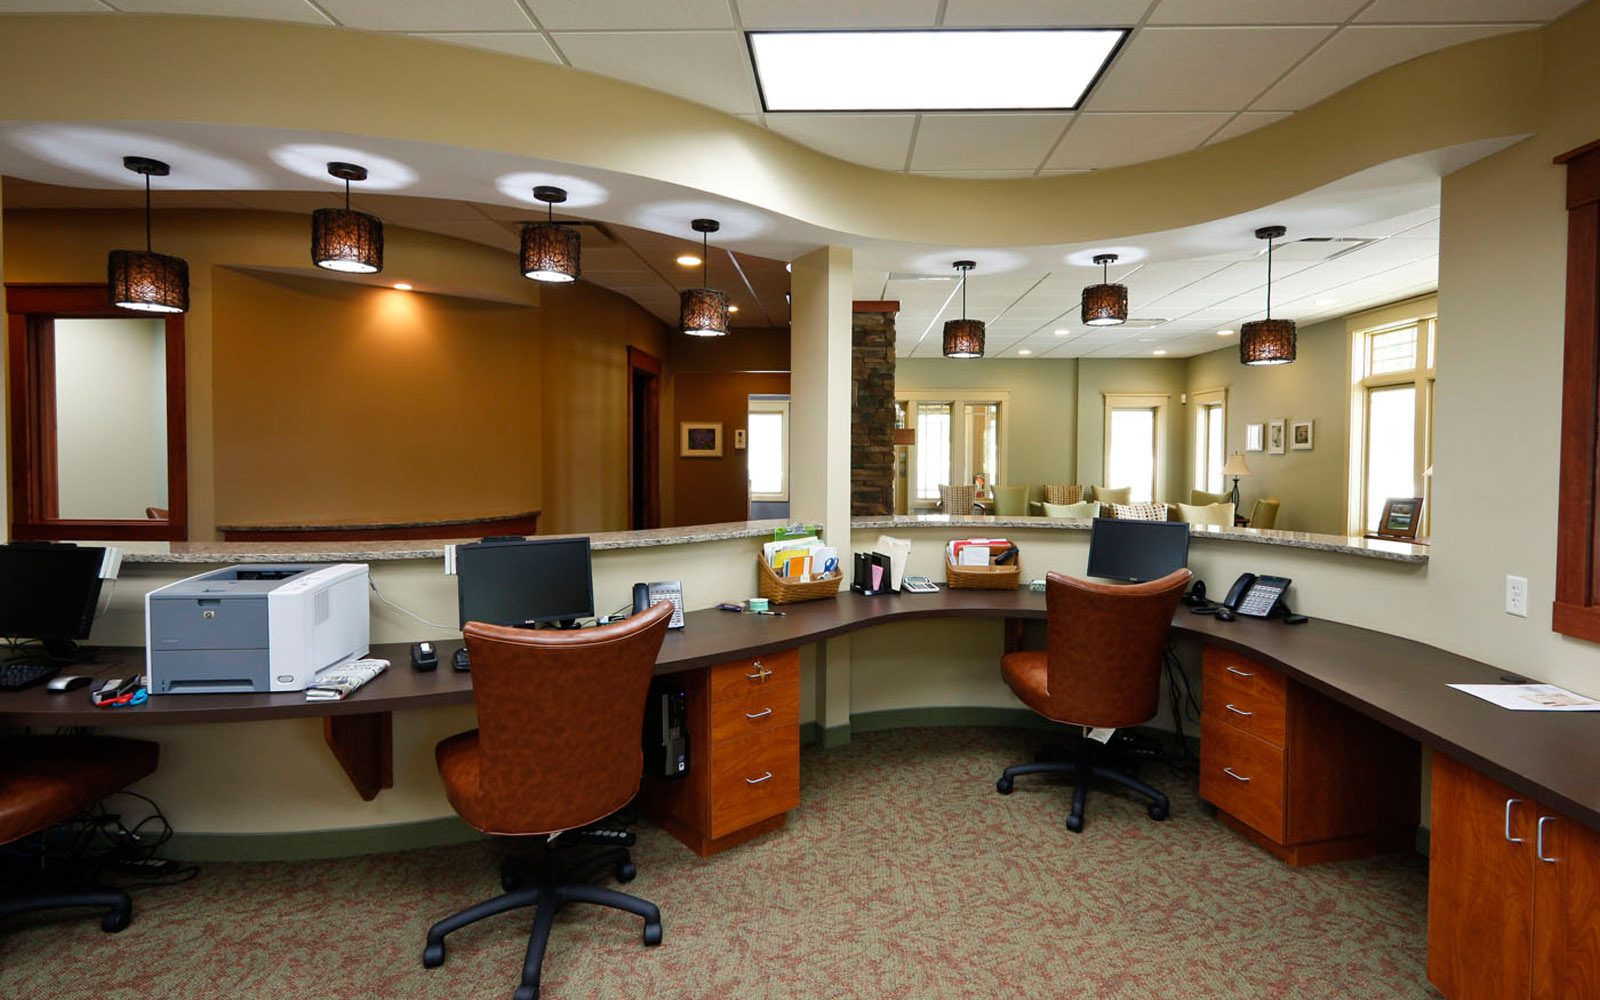 Medical dental and doctor 39 s office computer services - Business office ...